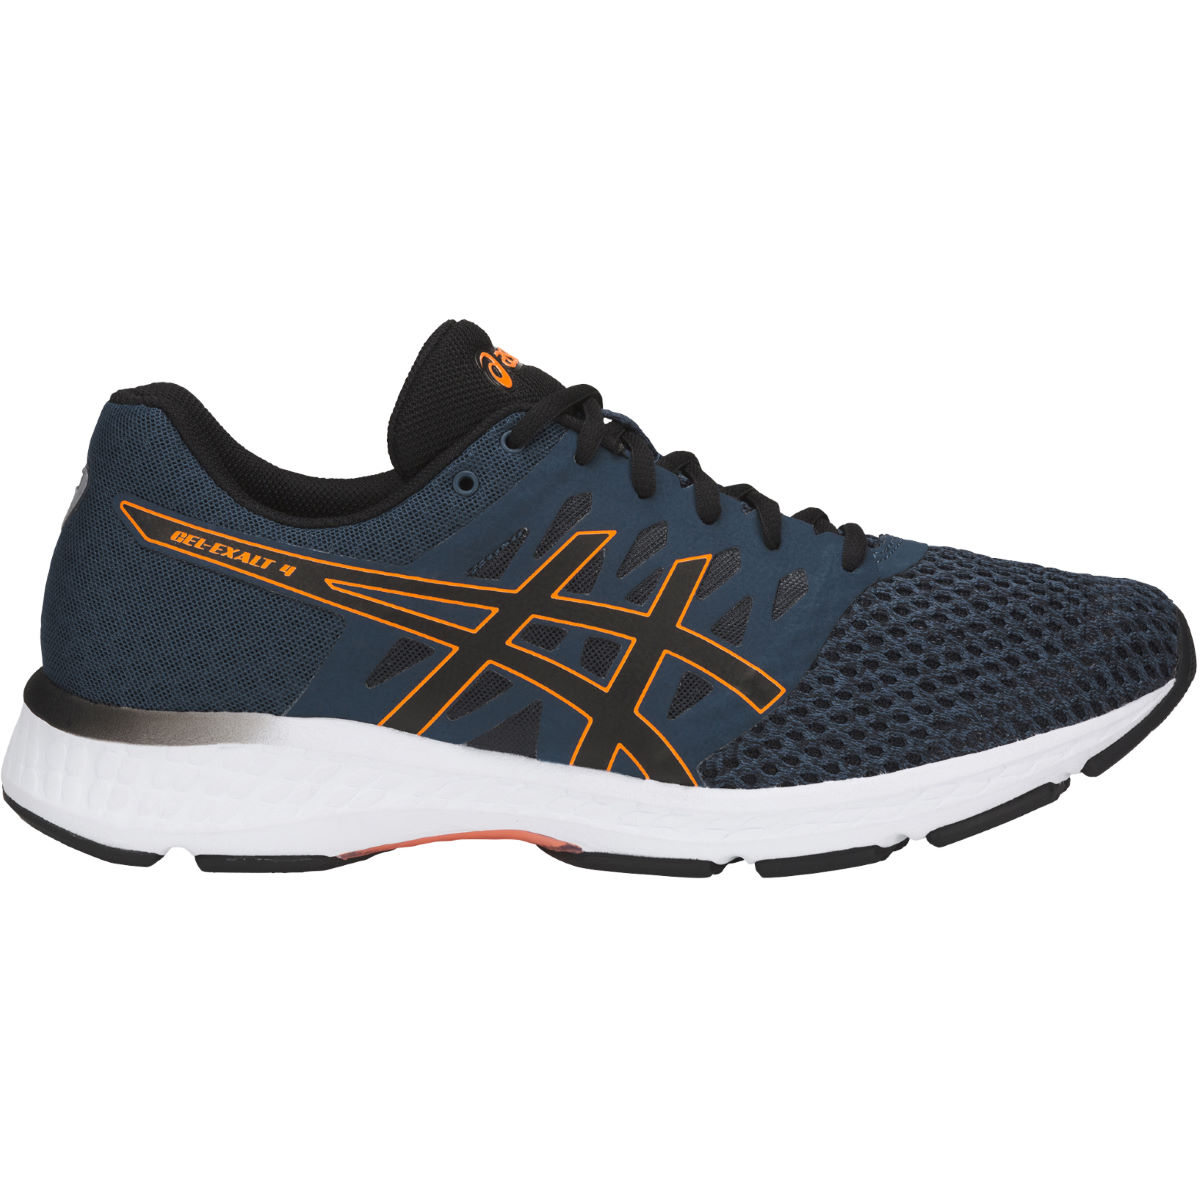 Chaussures Asics Gel-Exalt - UK 7.5 DARK BLUE/BLACK/SHOC